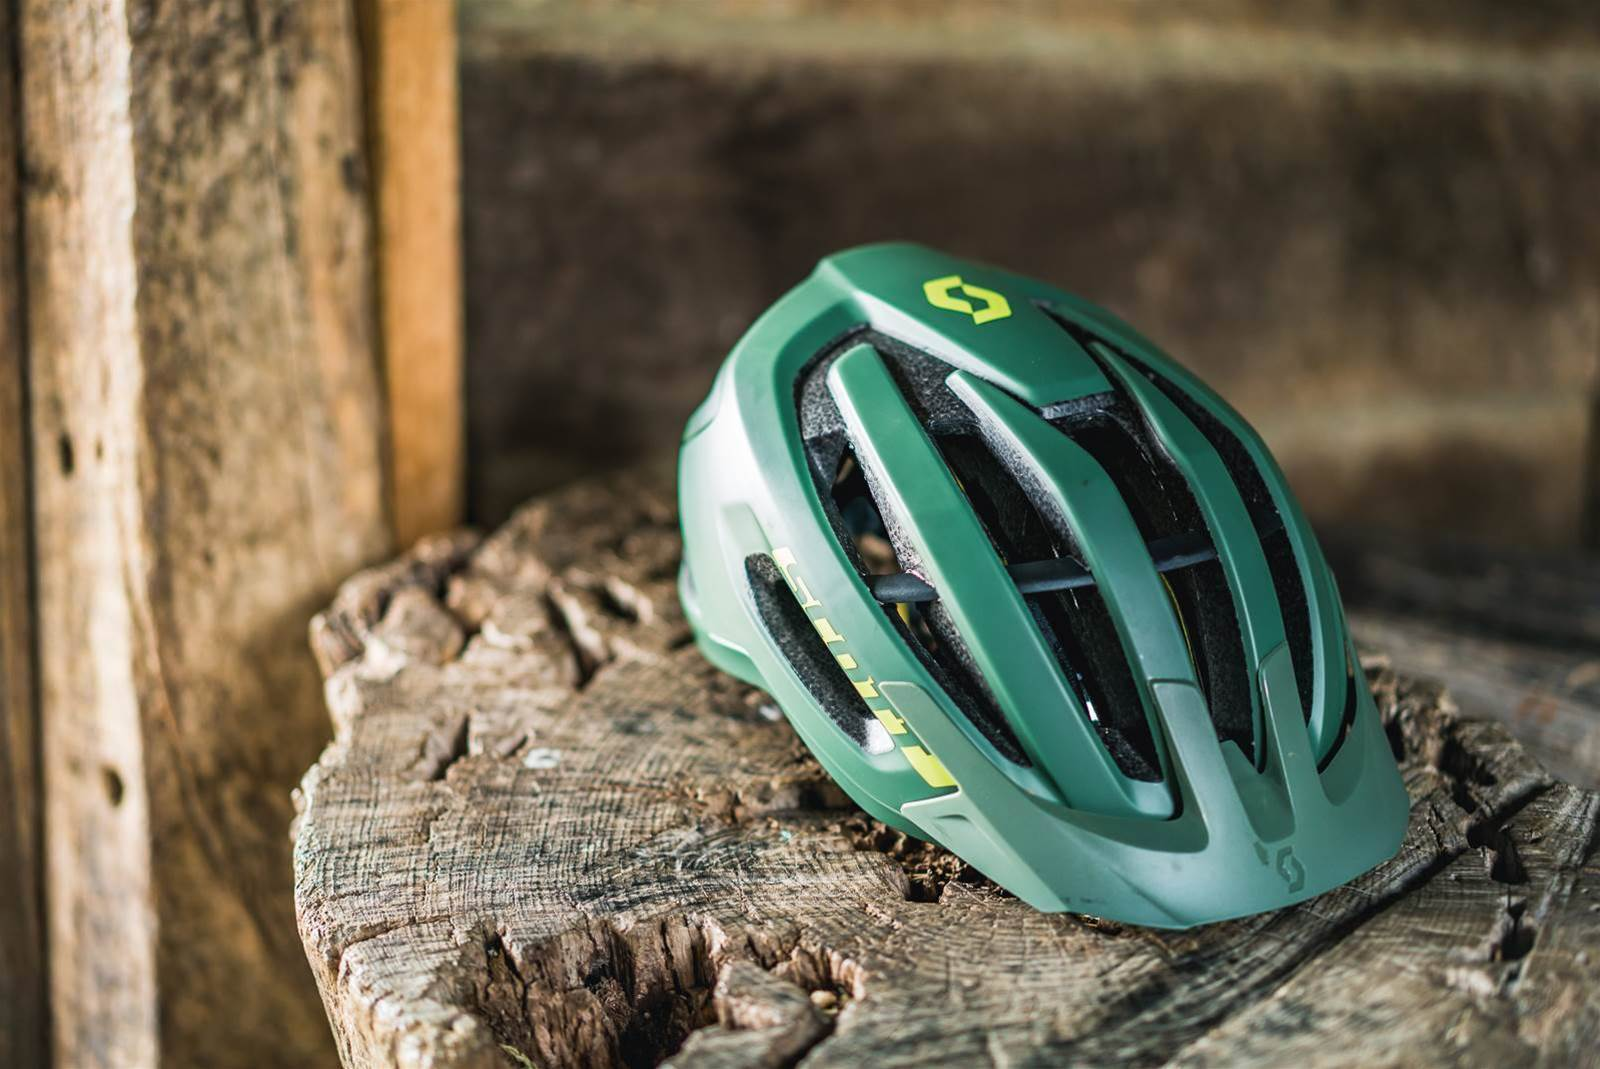 TESTED: Scott Fuga plus helmet